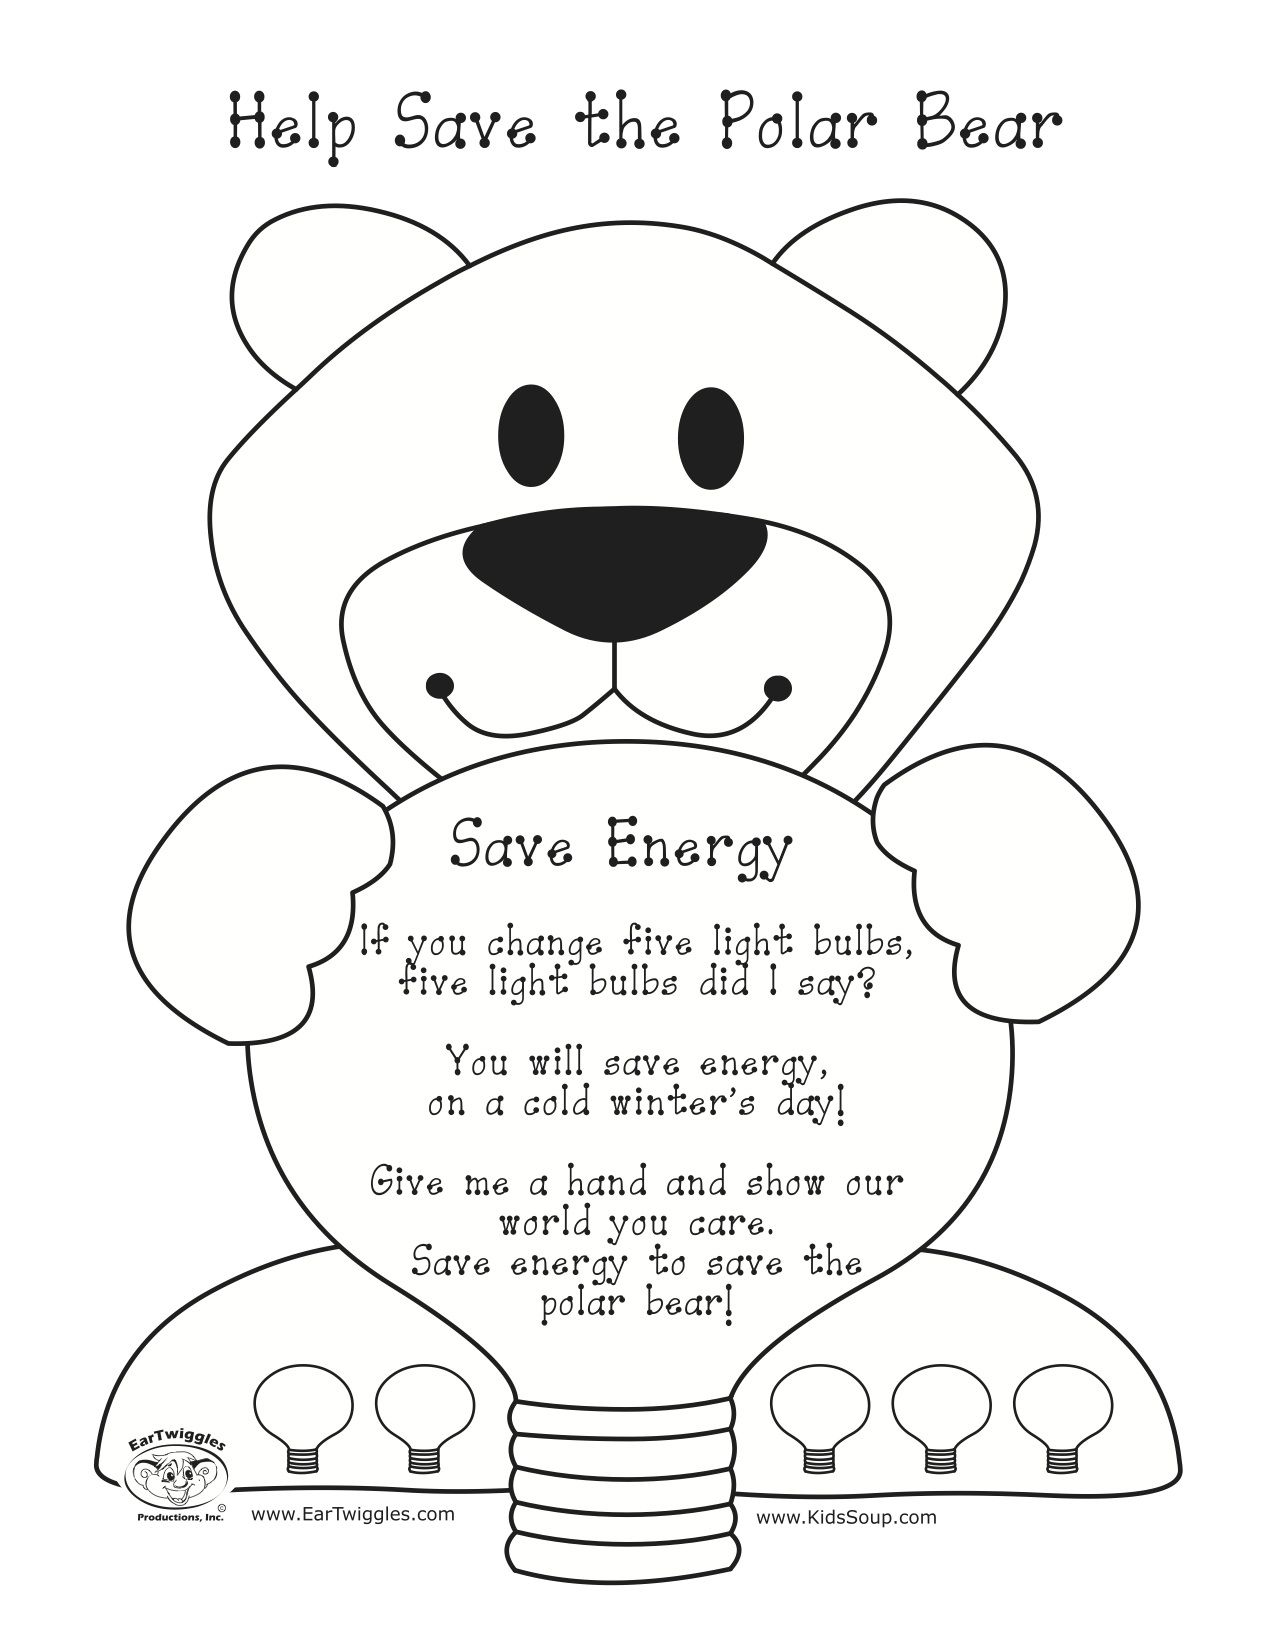 Help Save The Polar Bear Rhyme And Picture To Color